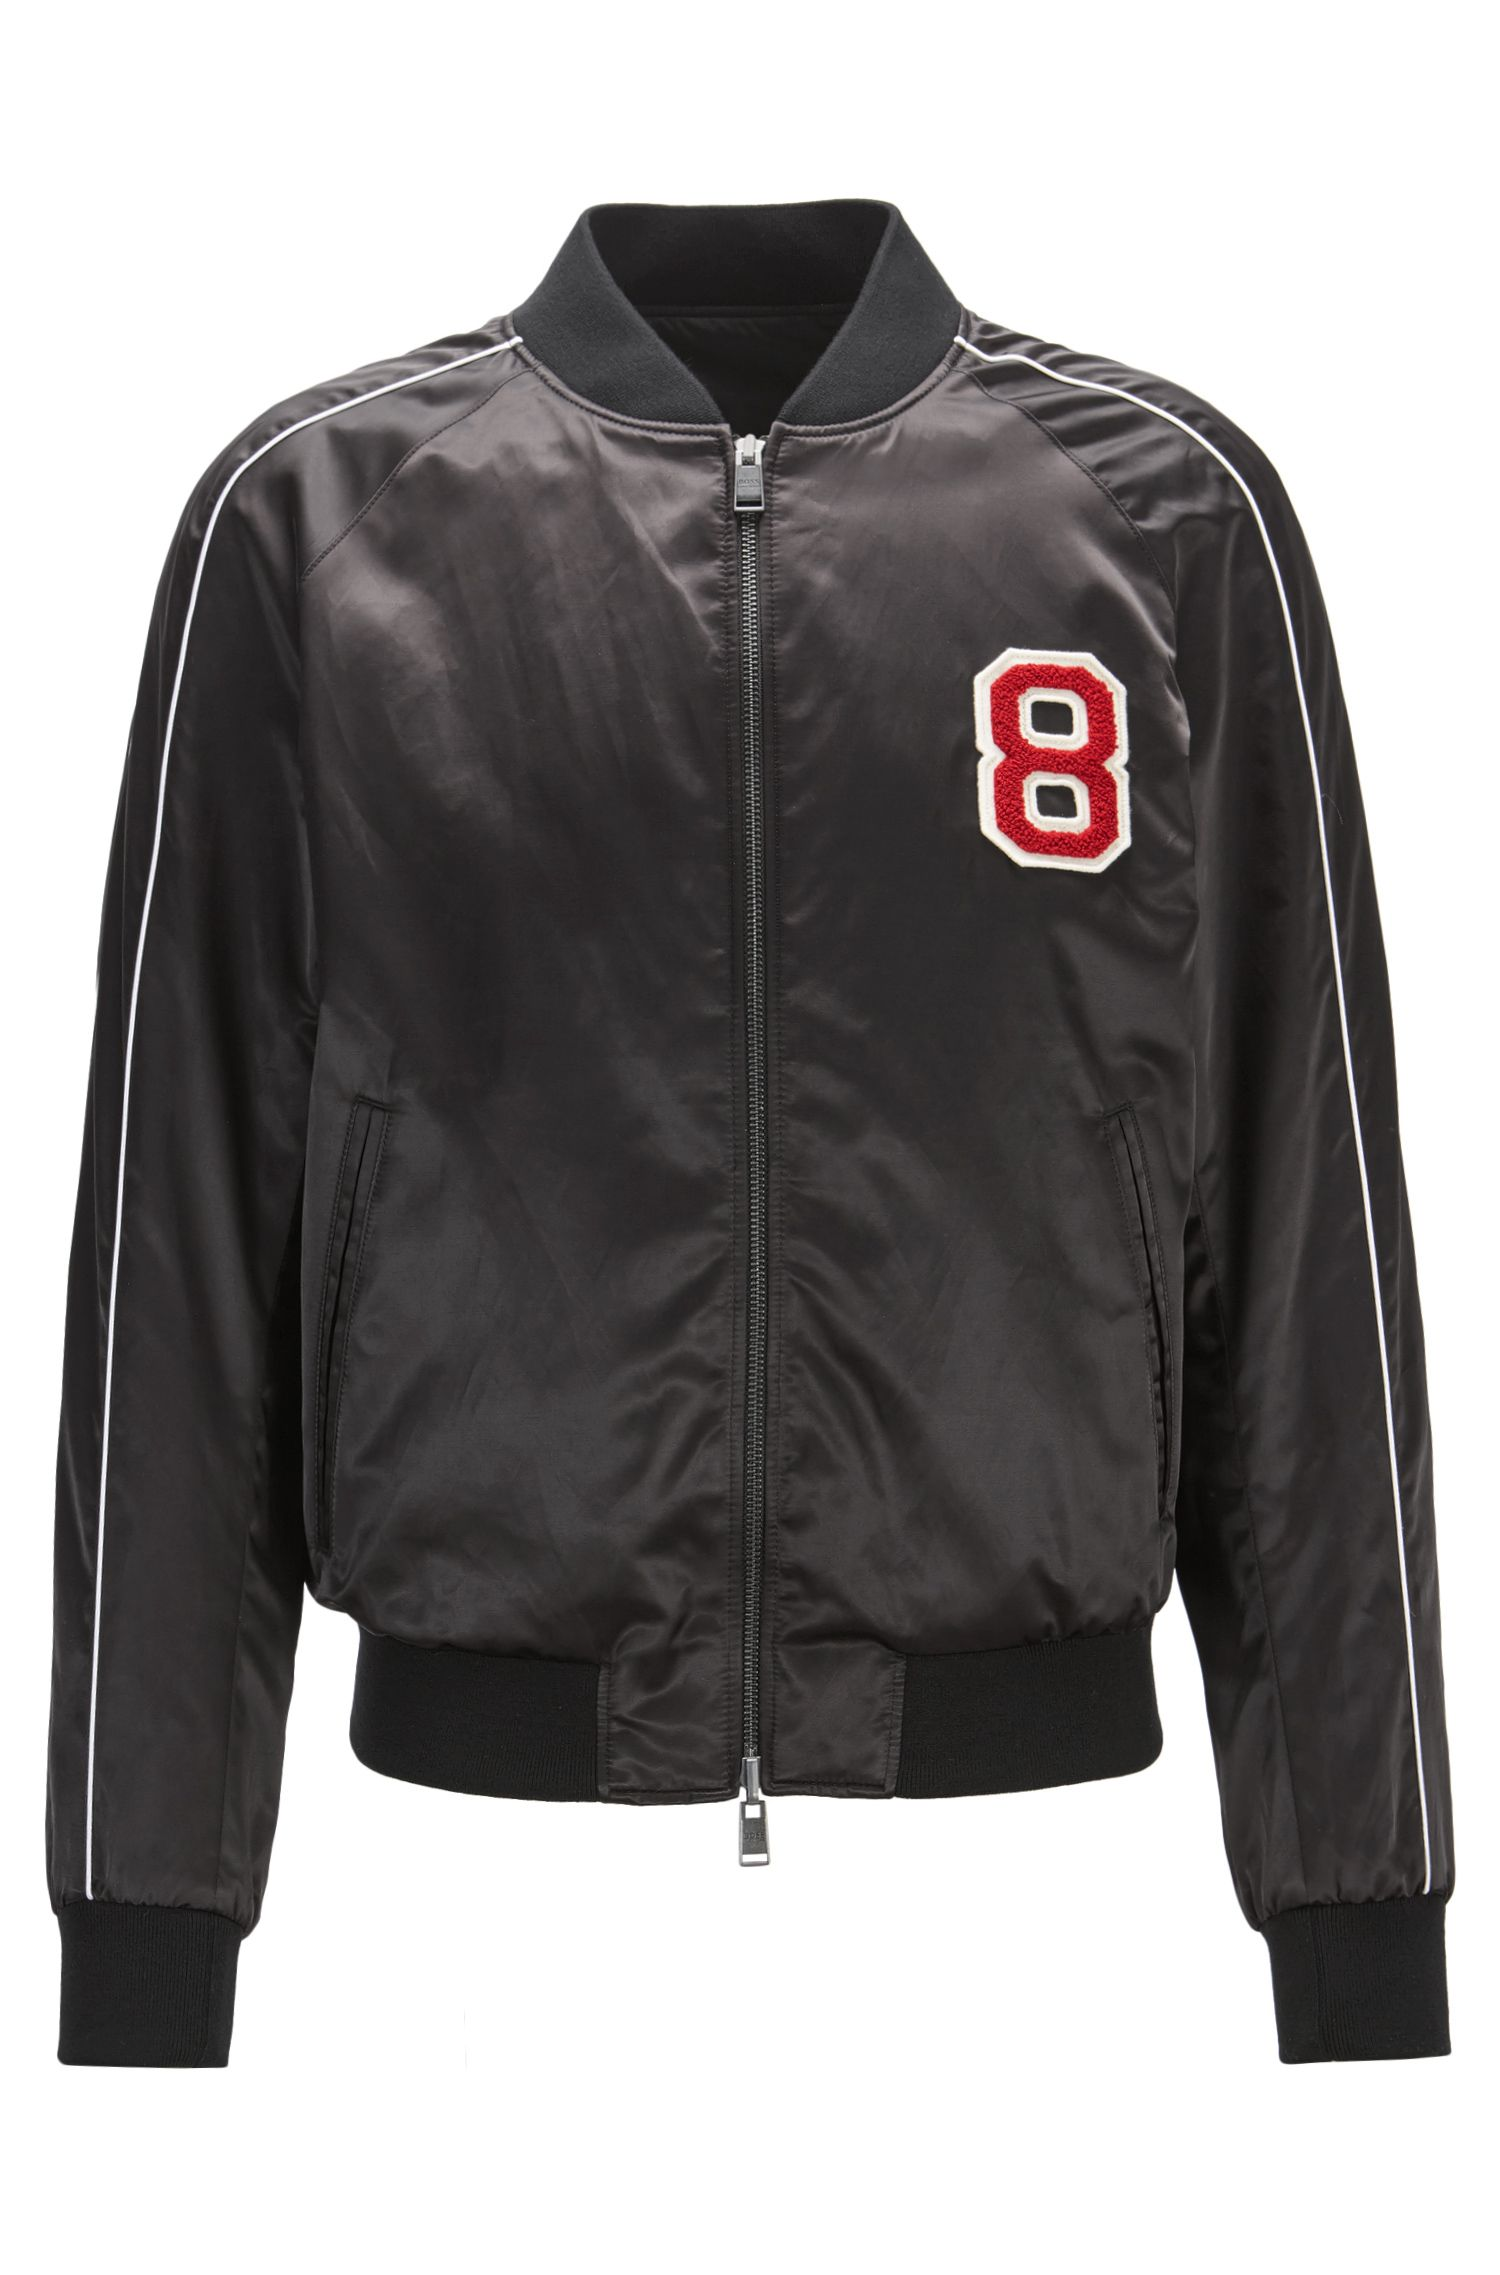 Racecar Embroidered Satin Bomber Jacket | Chiron PF